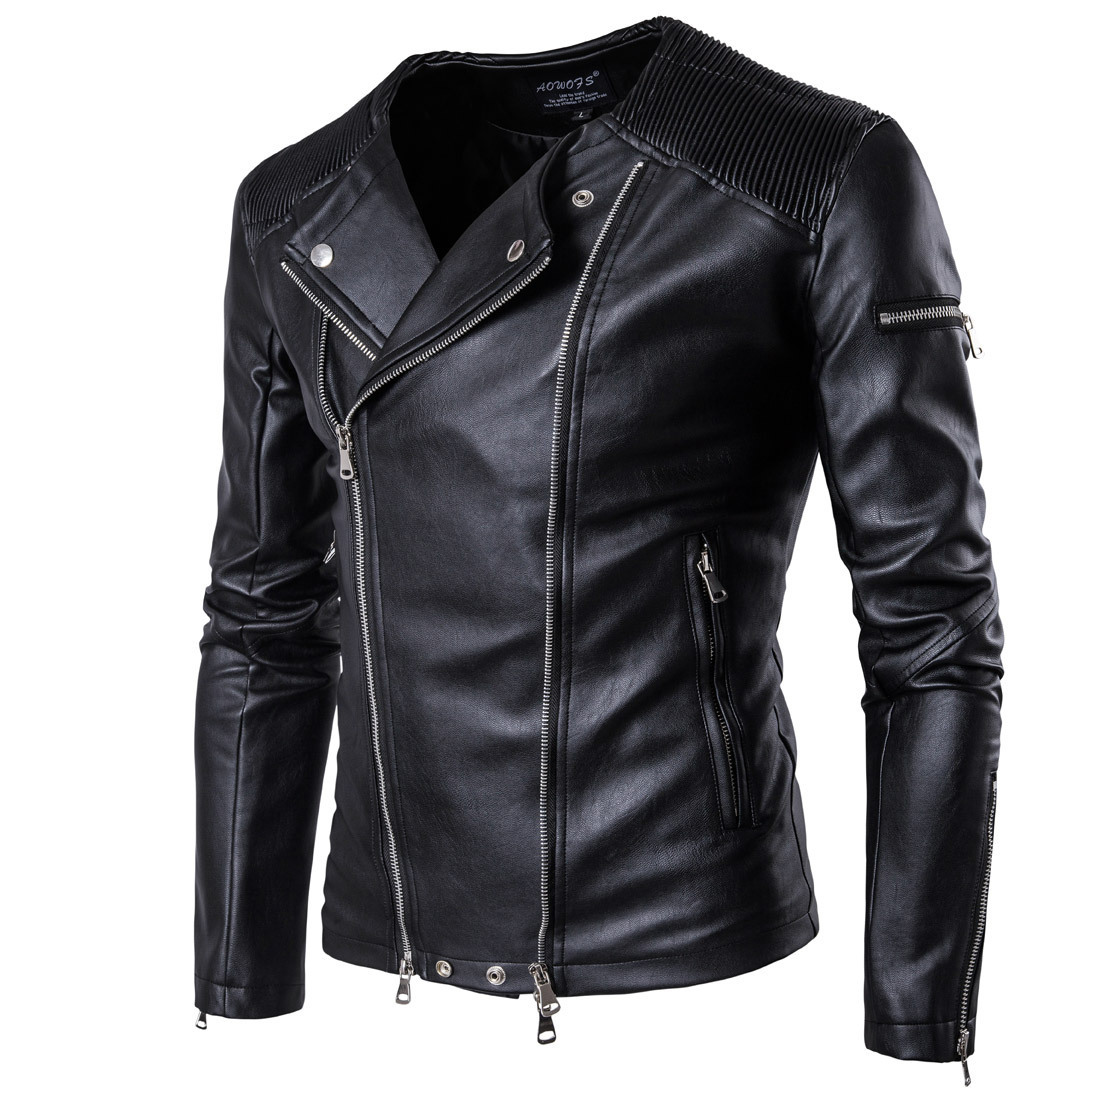 Ouma 2018 New Style High-End Men Da Lan Ji Car Leather Coat Popular Brand Leather Jacket Coat Ultra-Large Size B001